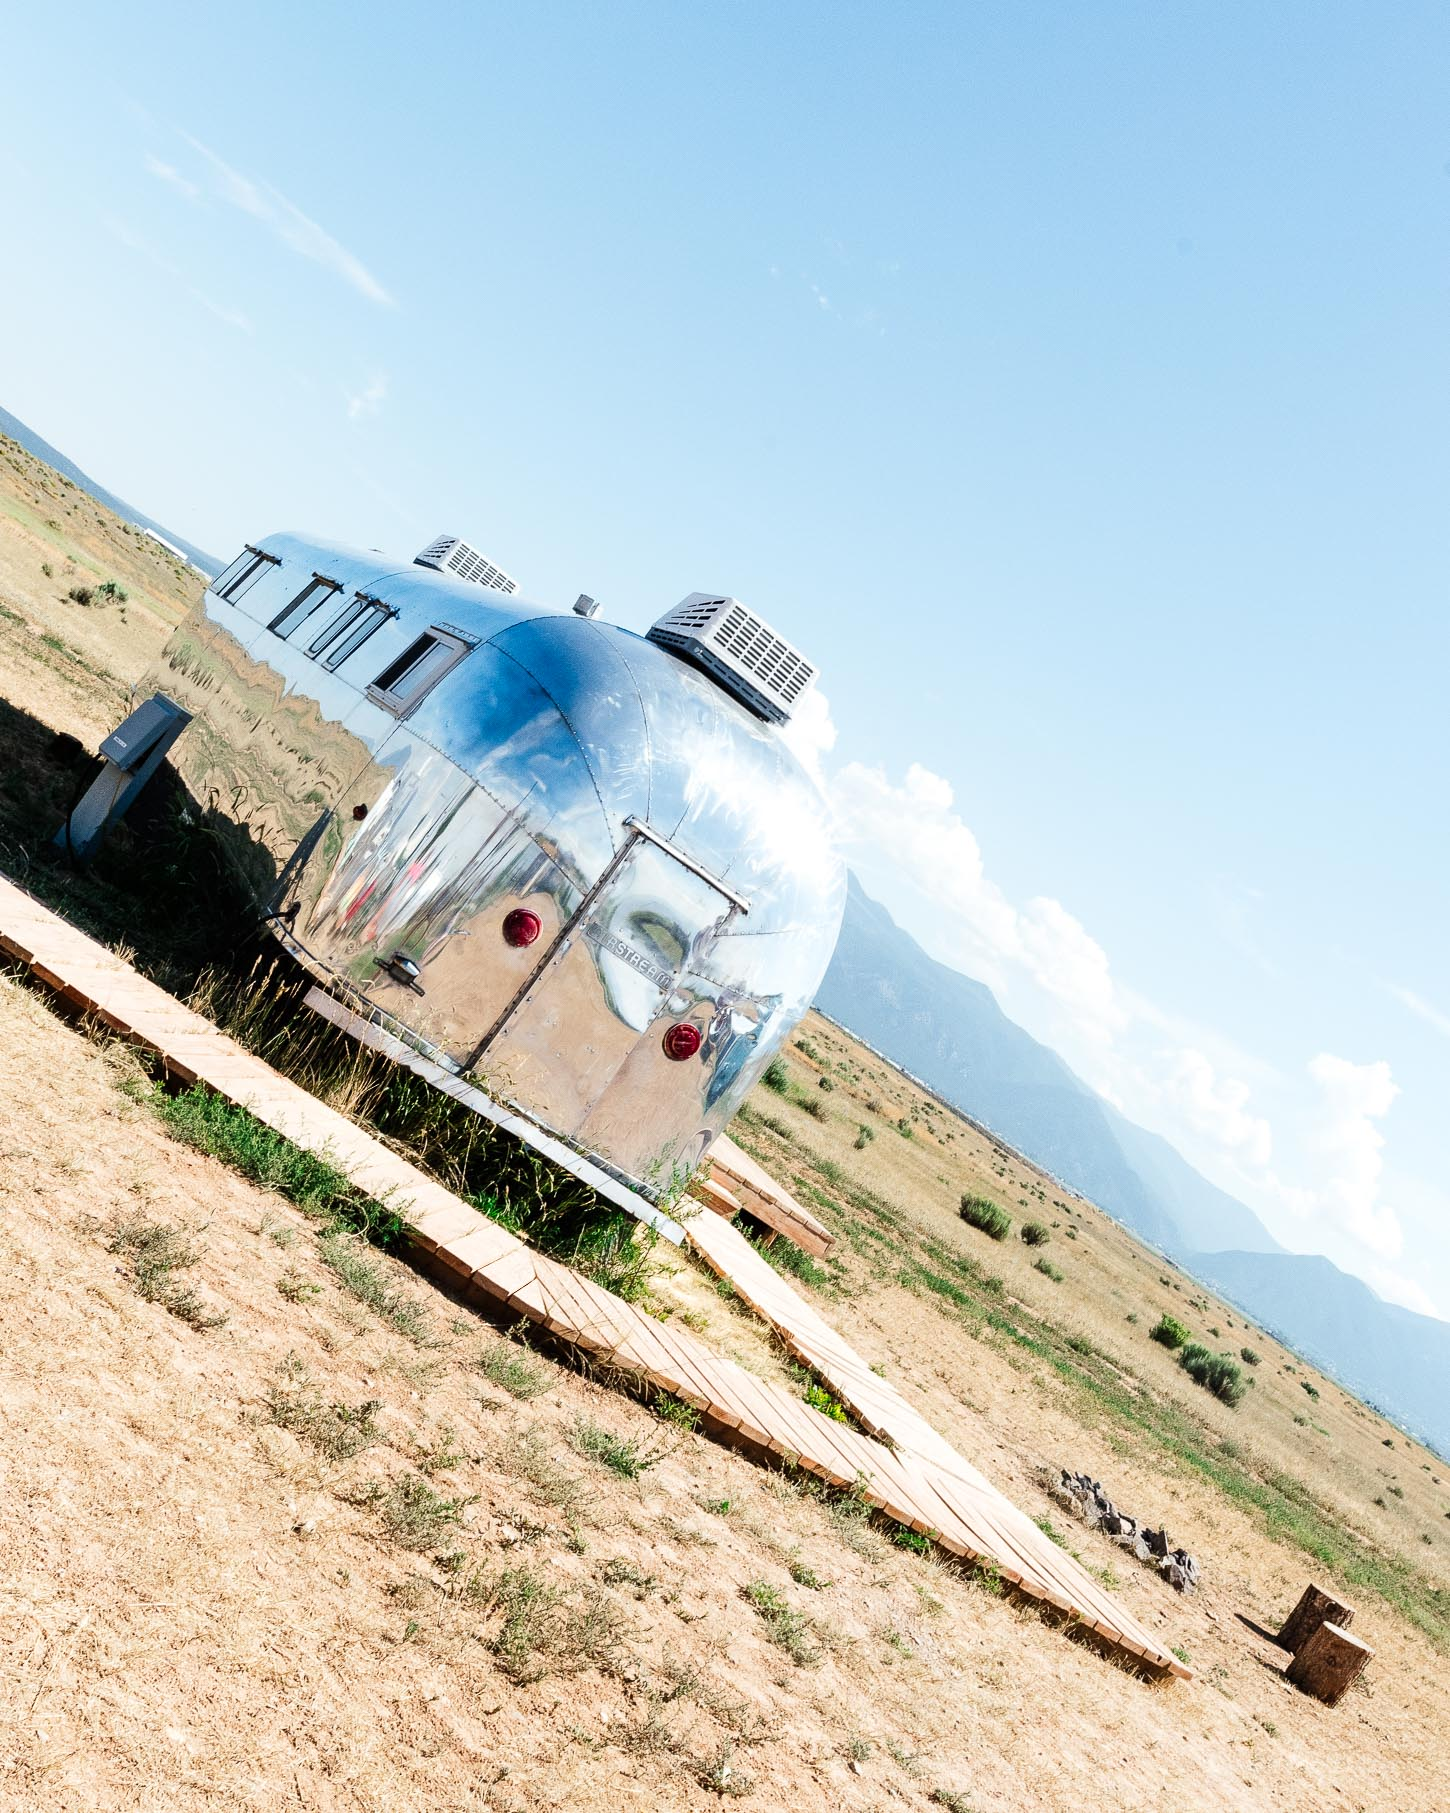 glamping vintage trailer camping in new mexico #travel #glamping #vintage #trailer